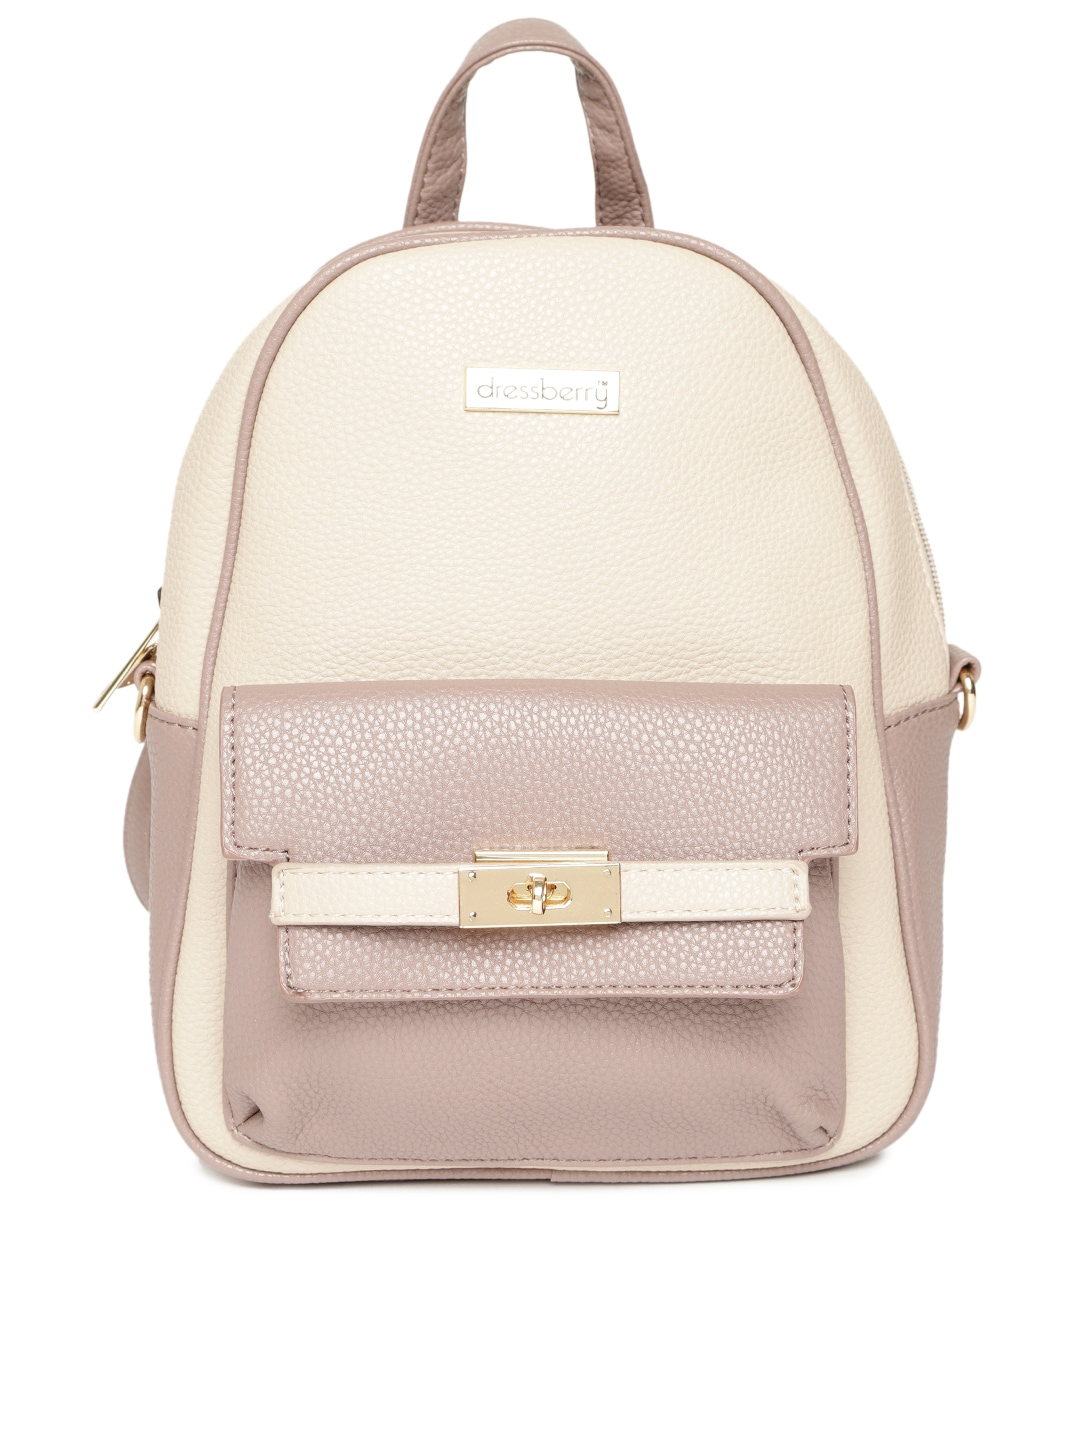 a28b711daa2 DressBerry Women Beige & Taupe Colourblocked Backpack